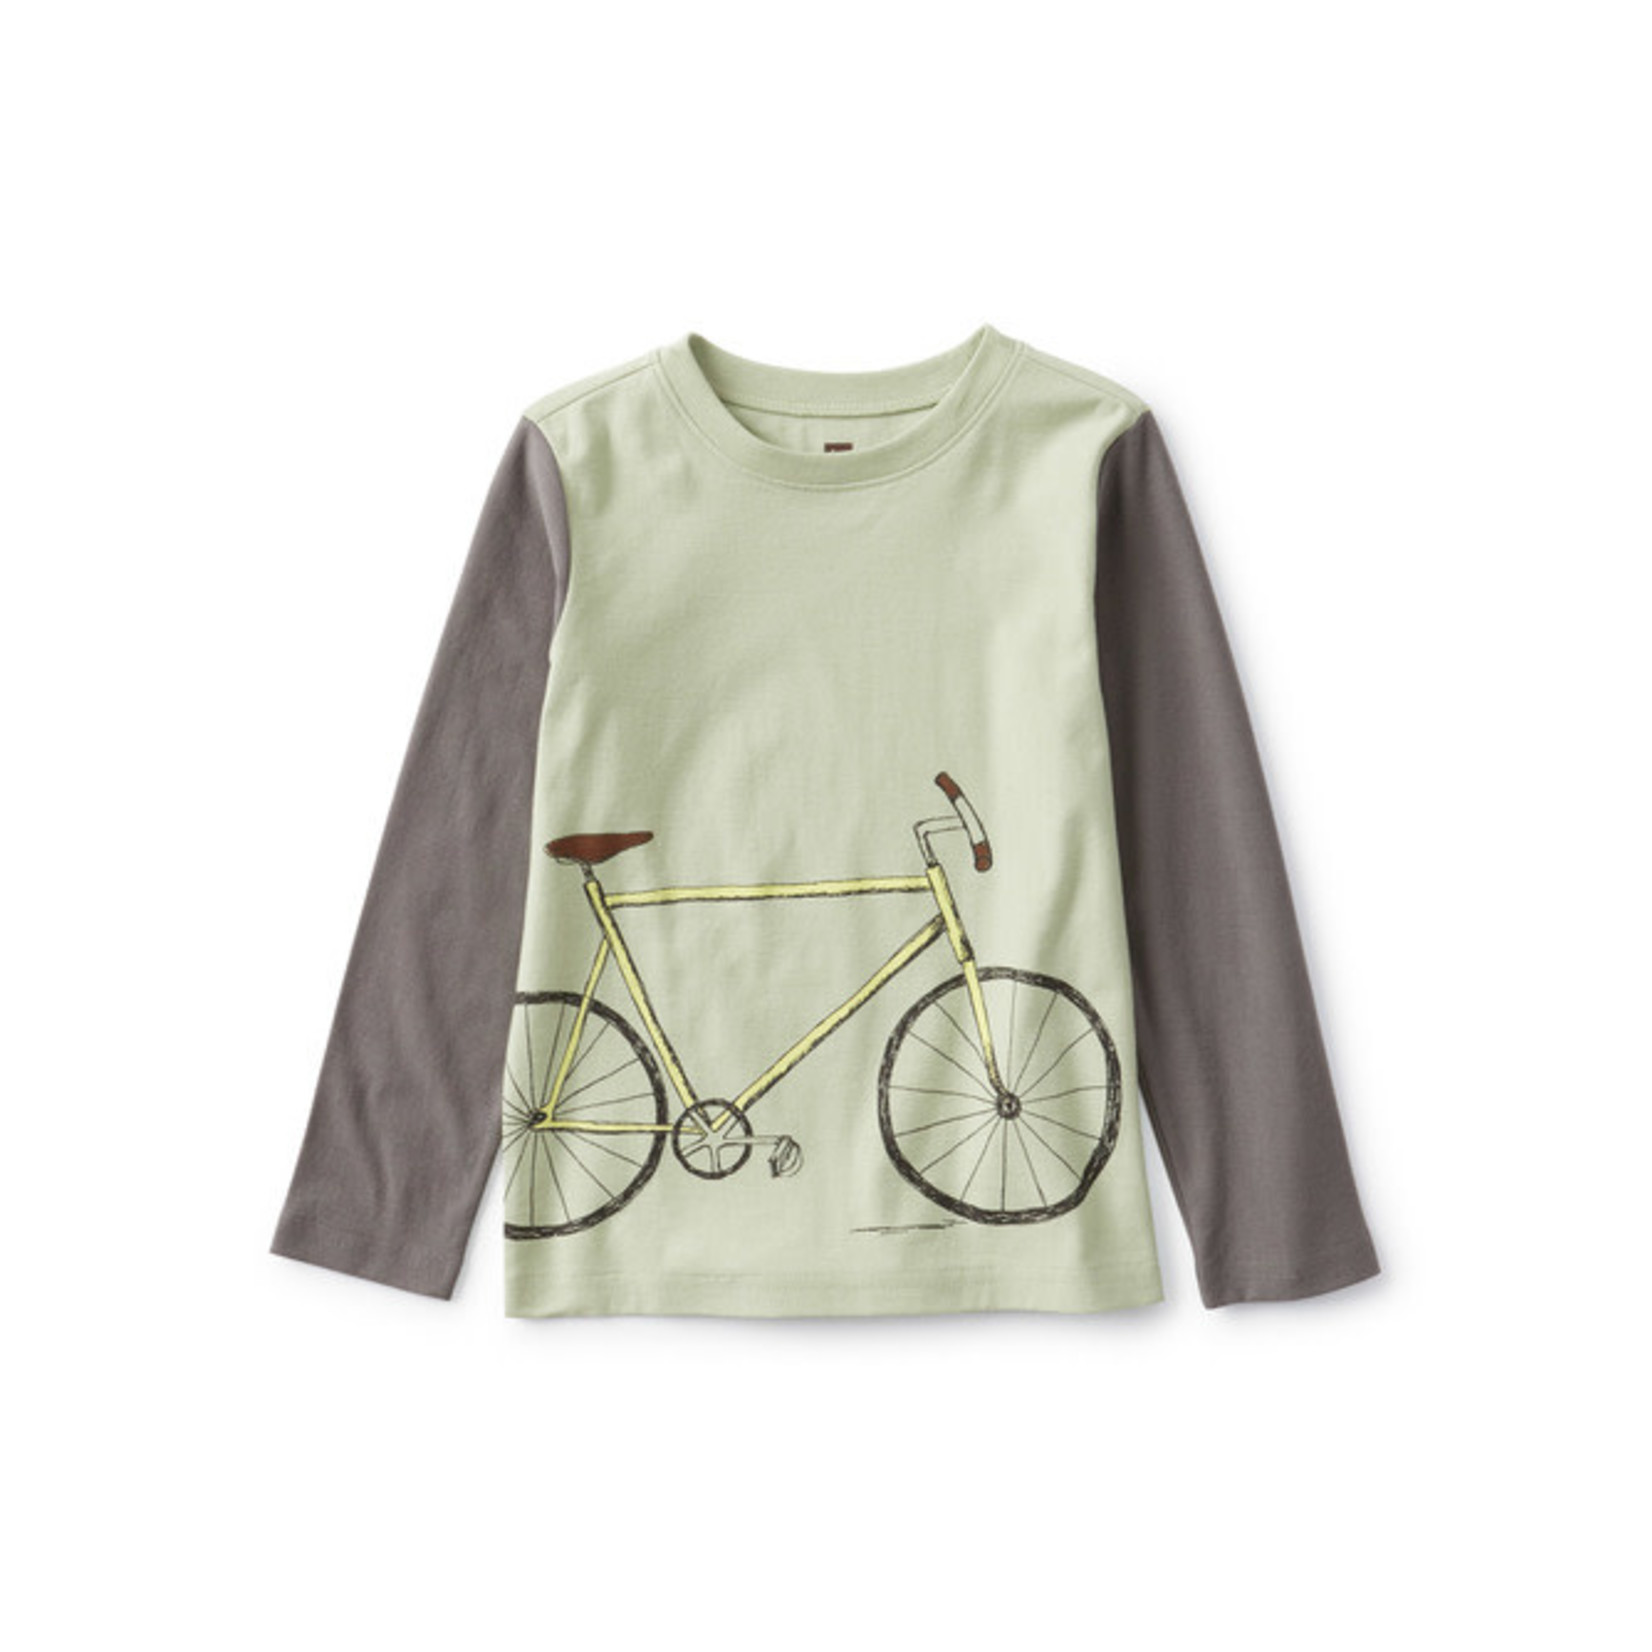 Tea Collection Bike Blocked Graphic Tee - Agave